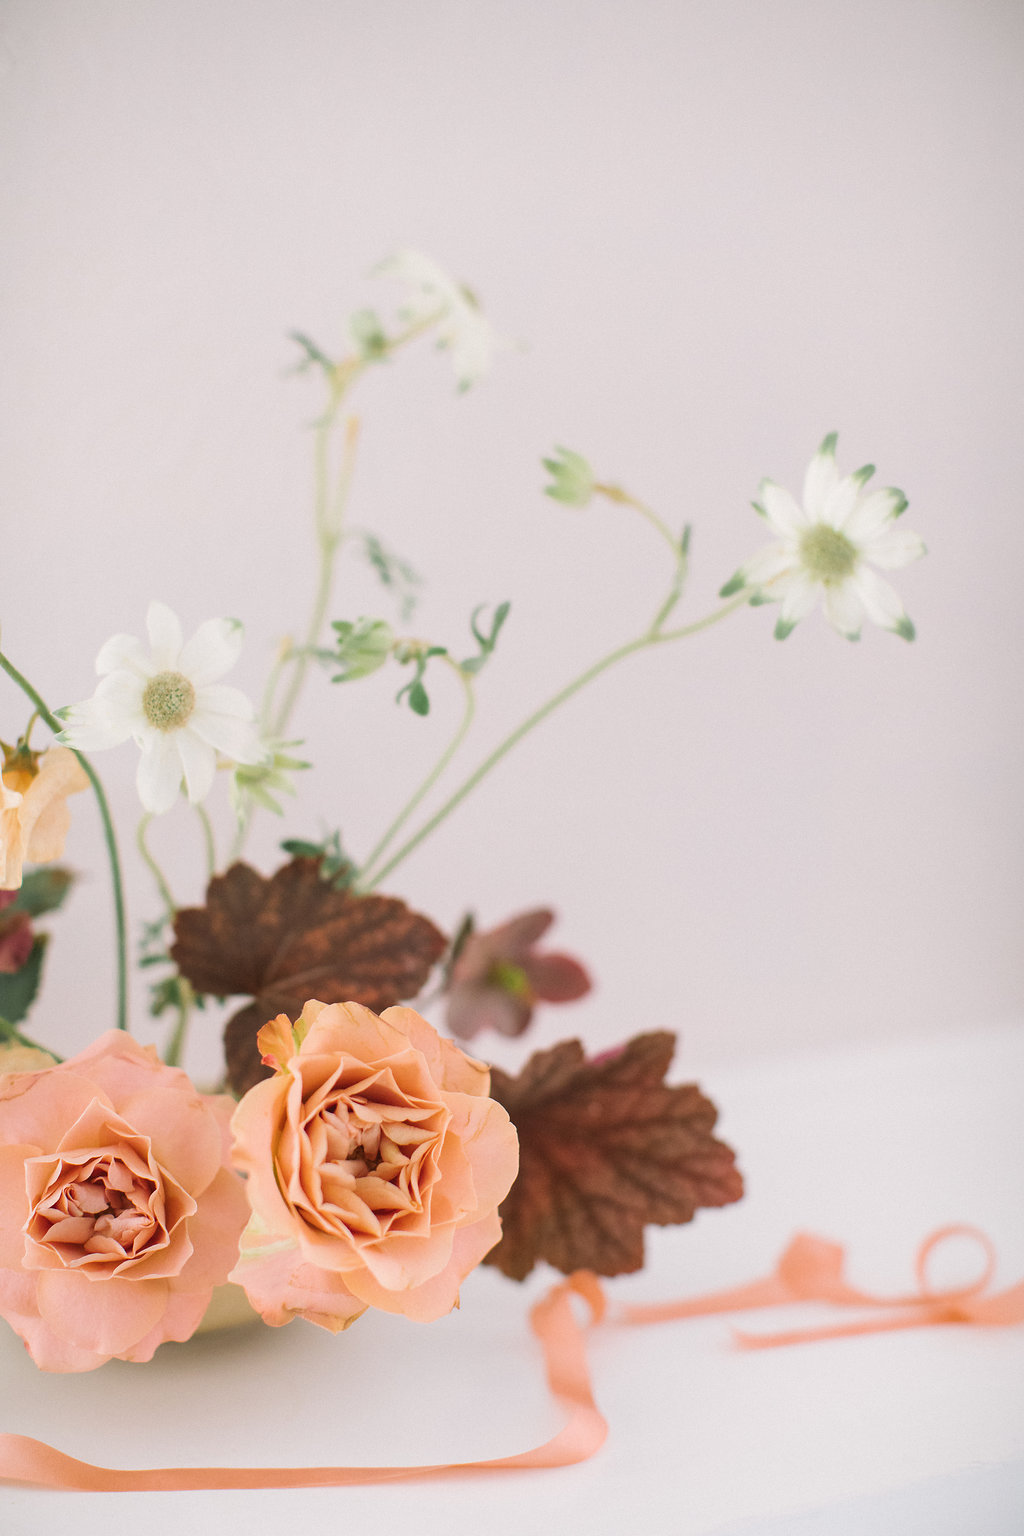 Minimal Floral Design With A Striking And Refined Approach 45